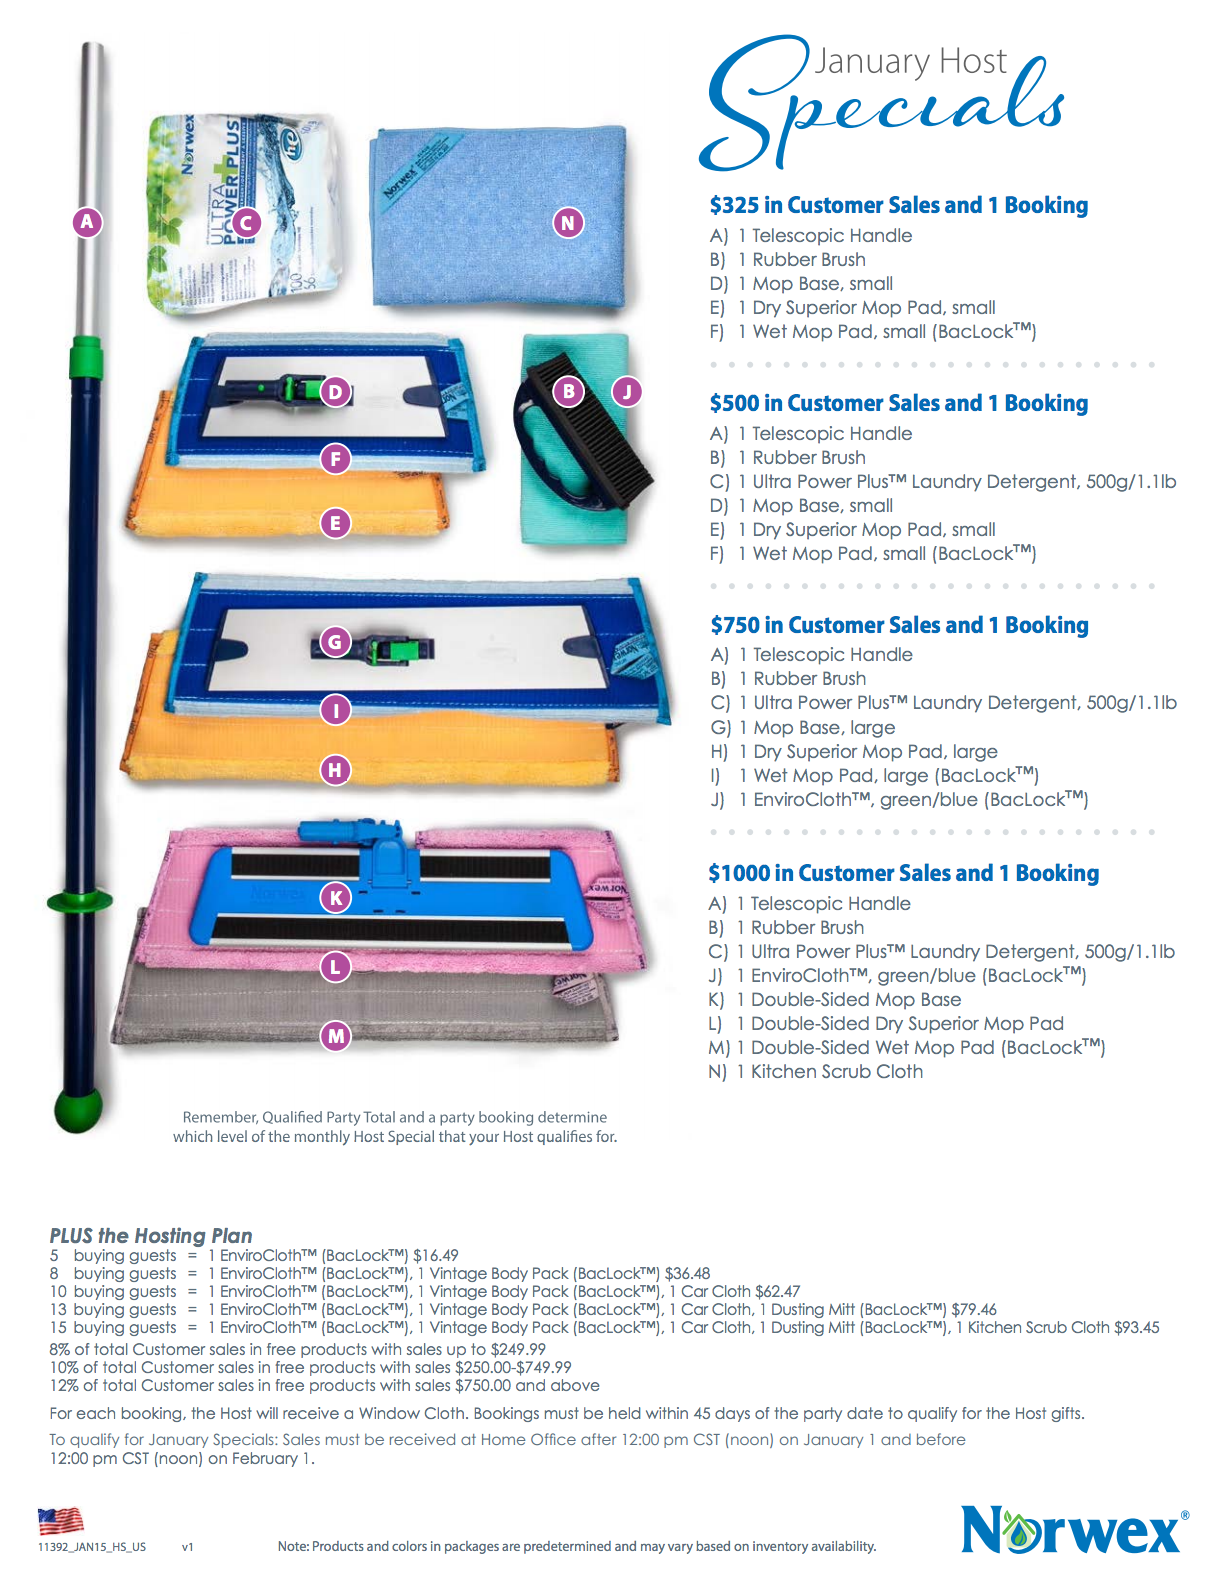 January 2015 Norwex Hostess Gifts and Specials!